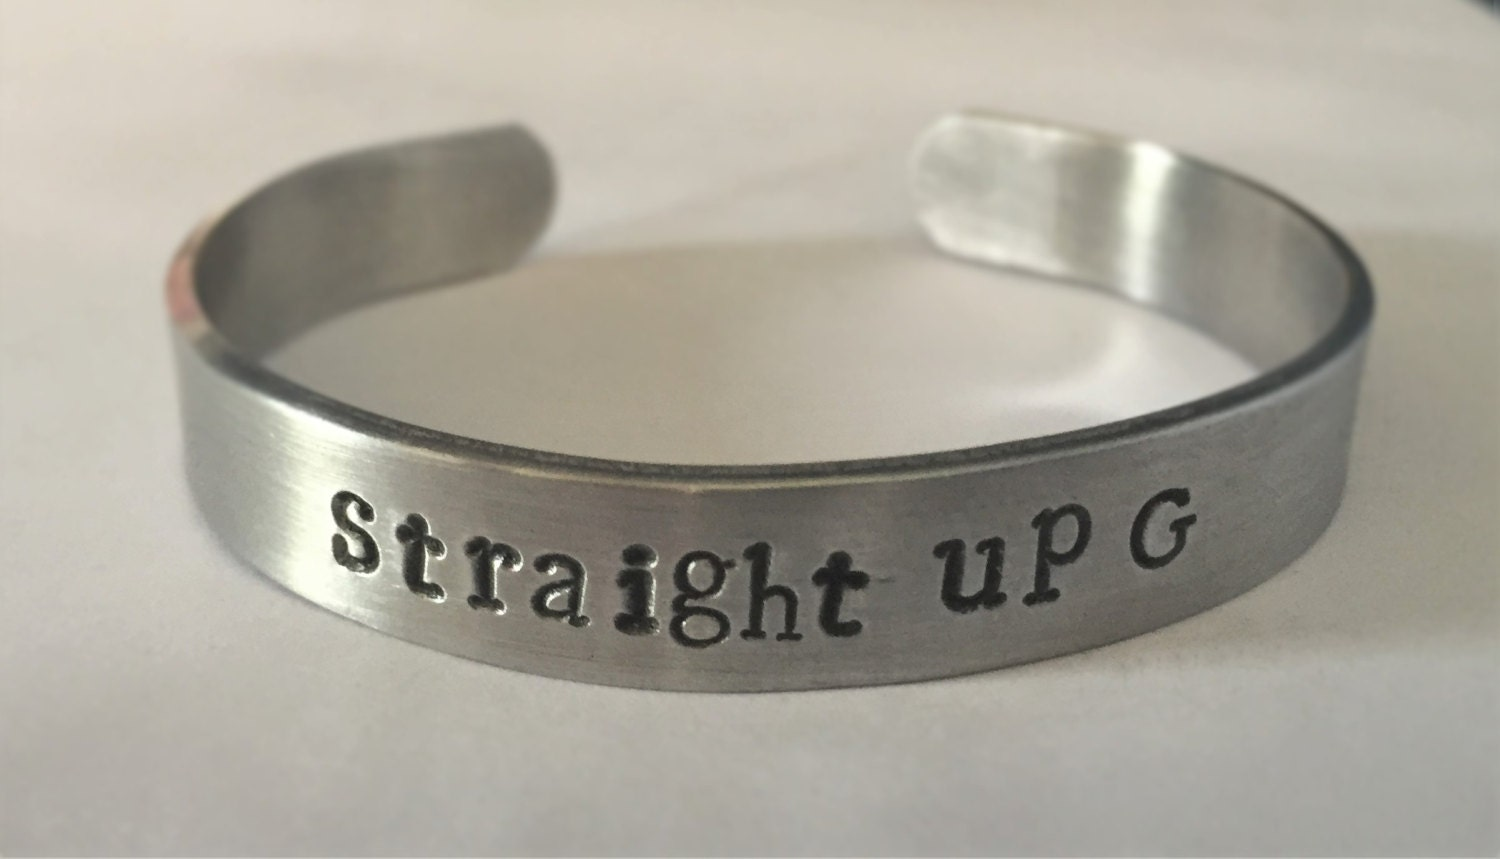 STRAIGHT UP G, gangster, cuff bracelet, stamped bracelet, stamped jewelry, copper jewelry, copper bracelet, wrap bracelet, bangle bracelet